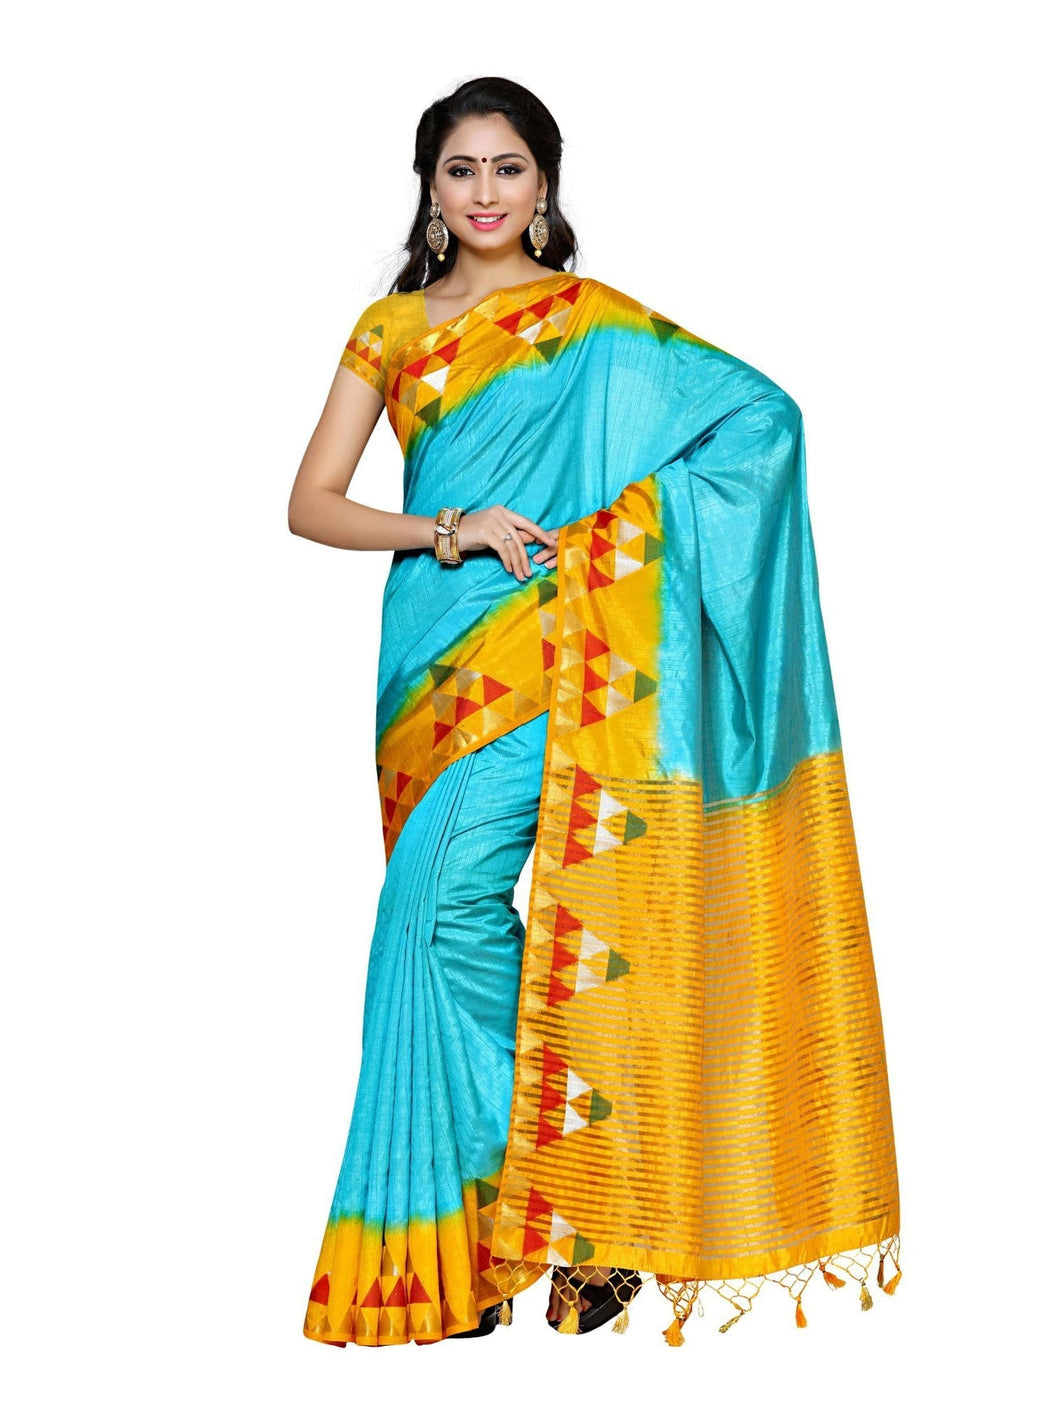 MIMOSA Ikkat Triangle Design Border Kanjivaram Style Silk Saree with Blouse in Color Sky Blue (4021-217-2d-and-gld) - kupindaindia